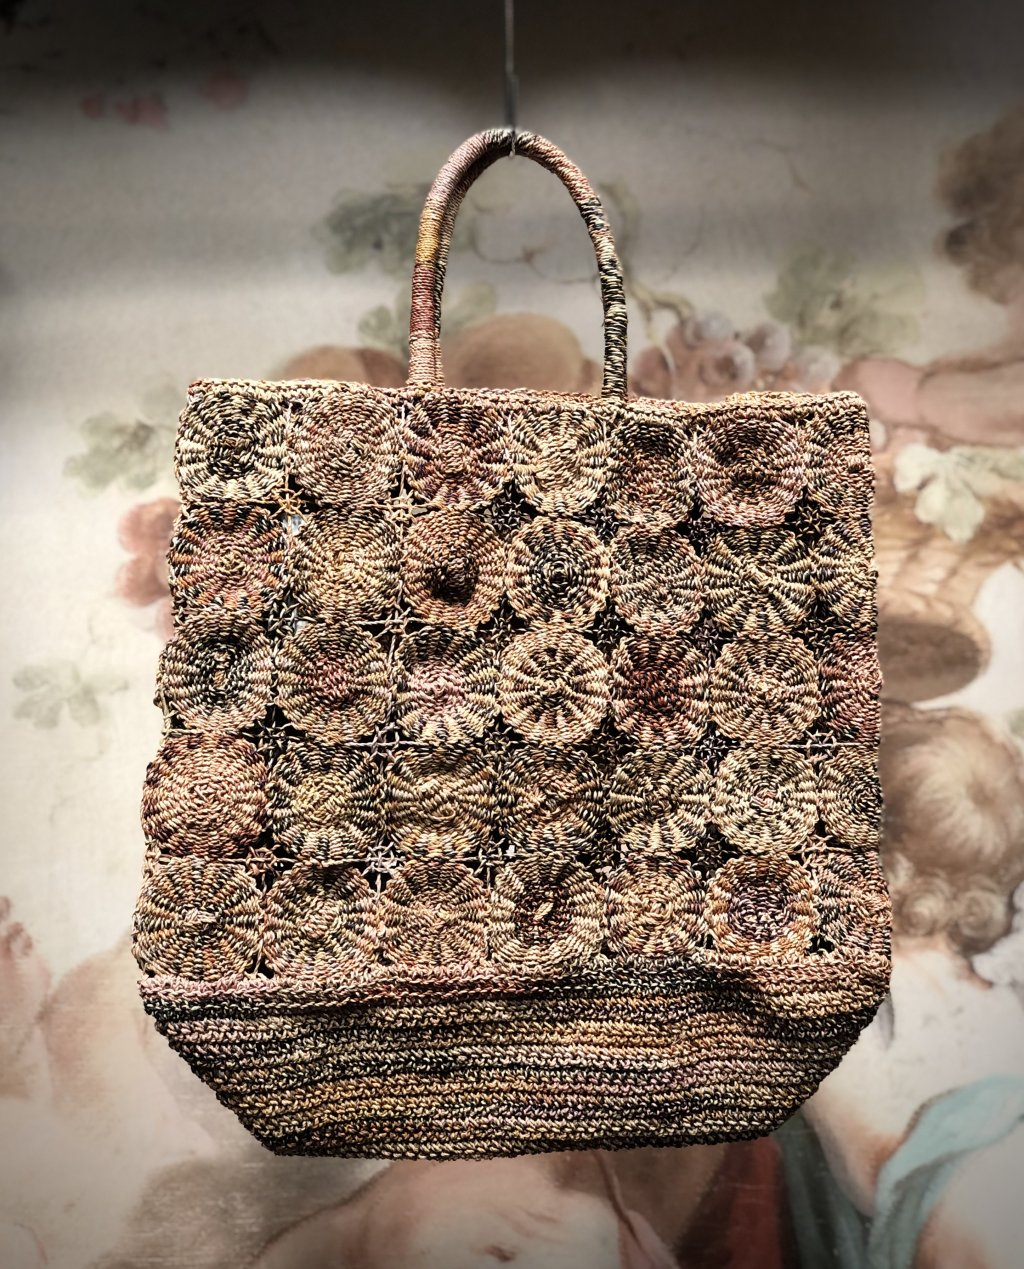 Sophie Digard | ALL NEW - SPRING 2020 | Large Raffia Hand Bag with Repeating Circles